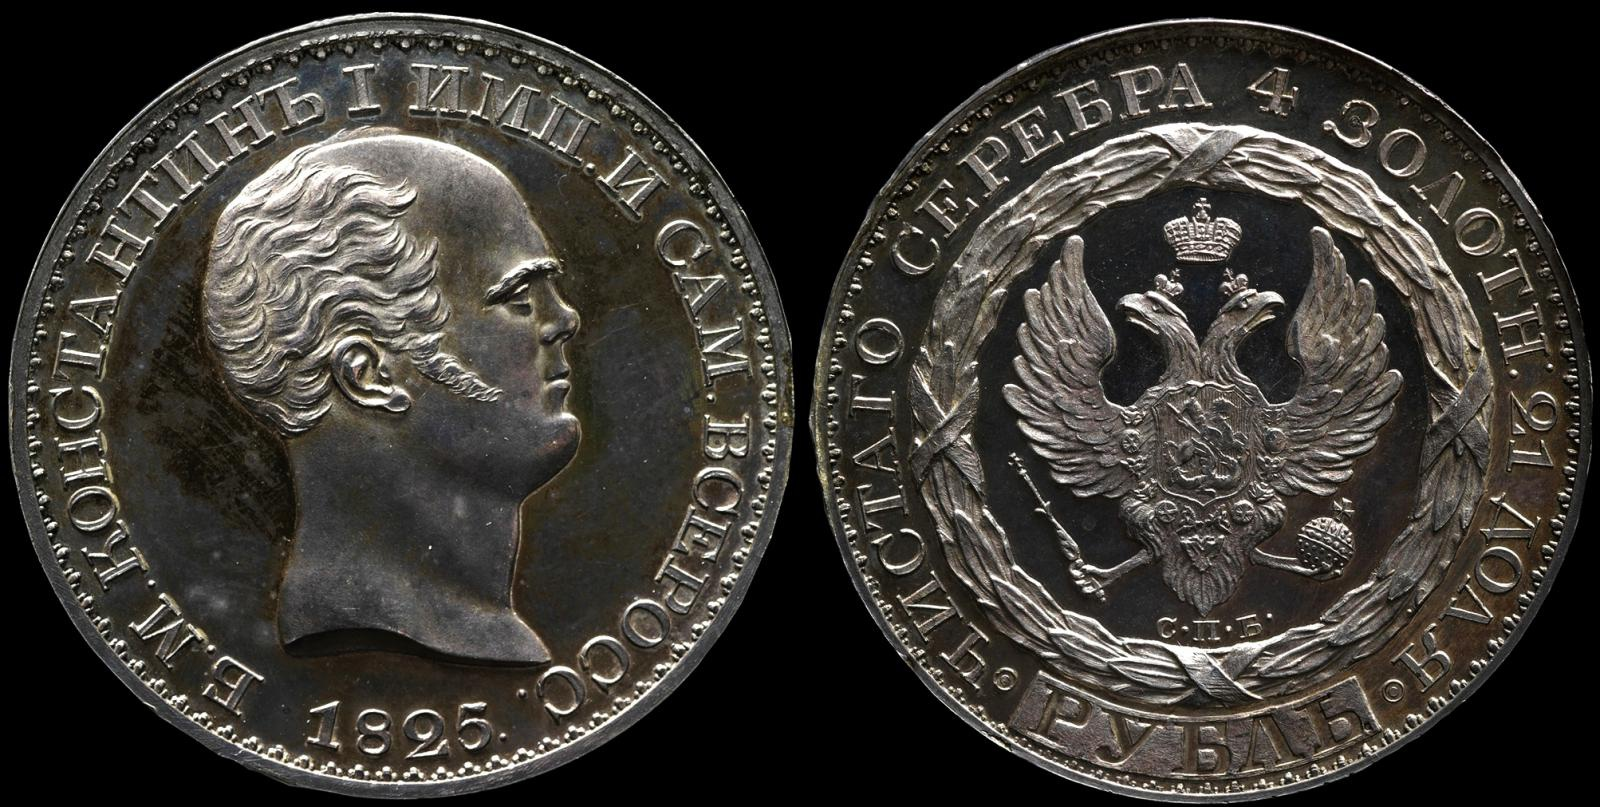 1825%20Constantine%20ruble%20with%20edge%20calibration%20marks.jpg